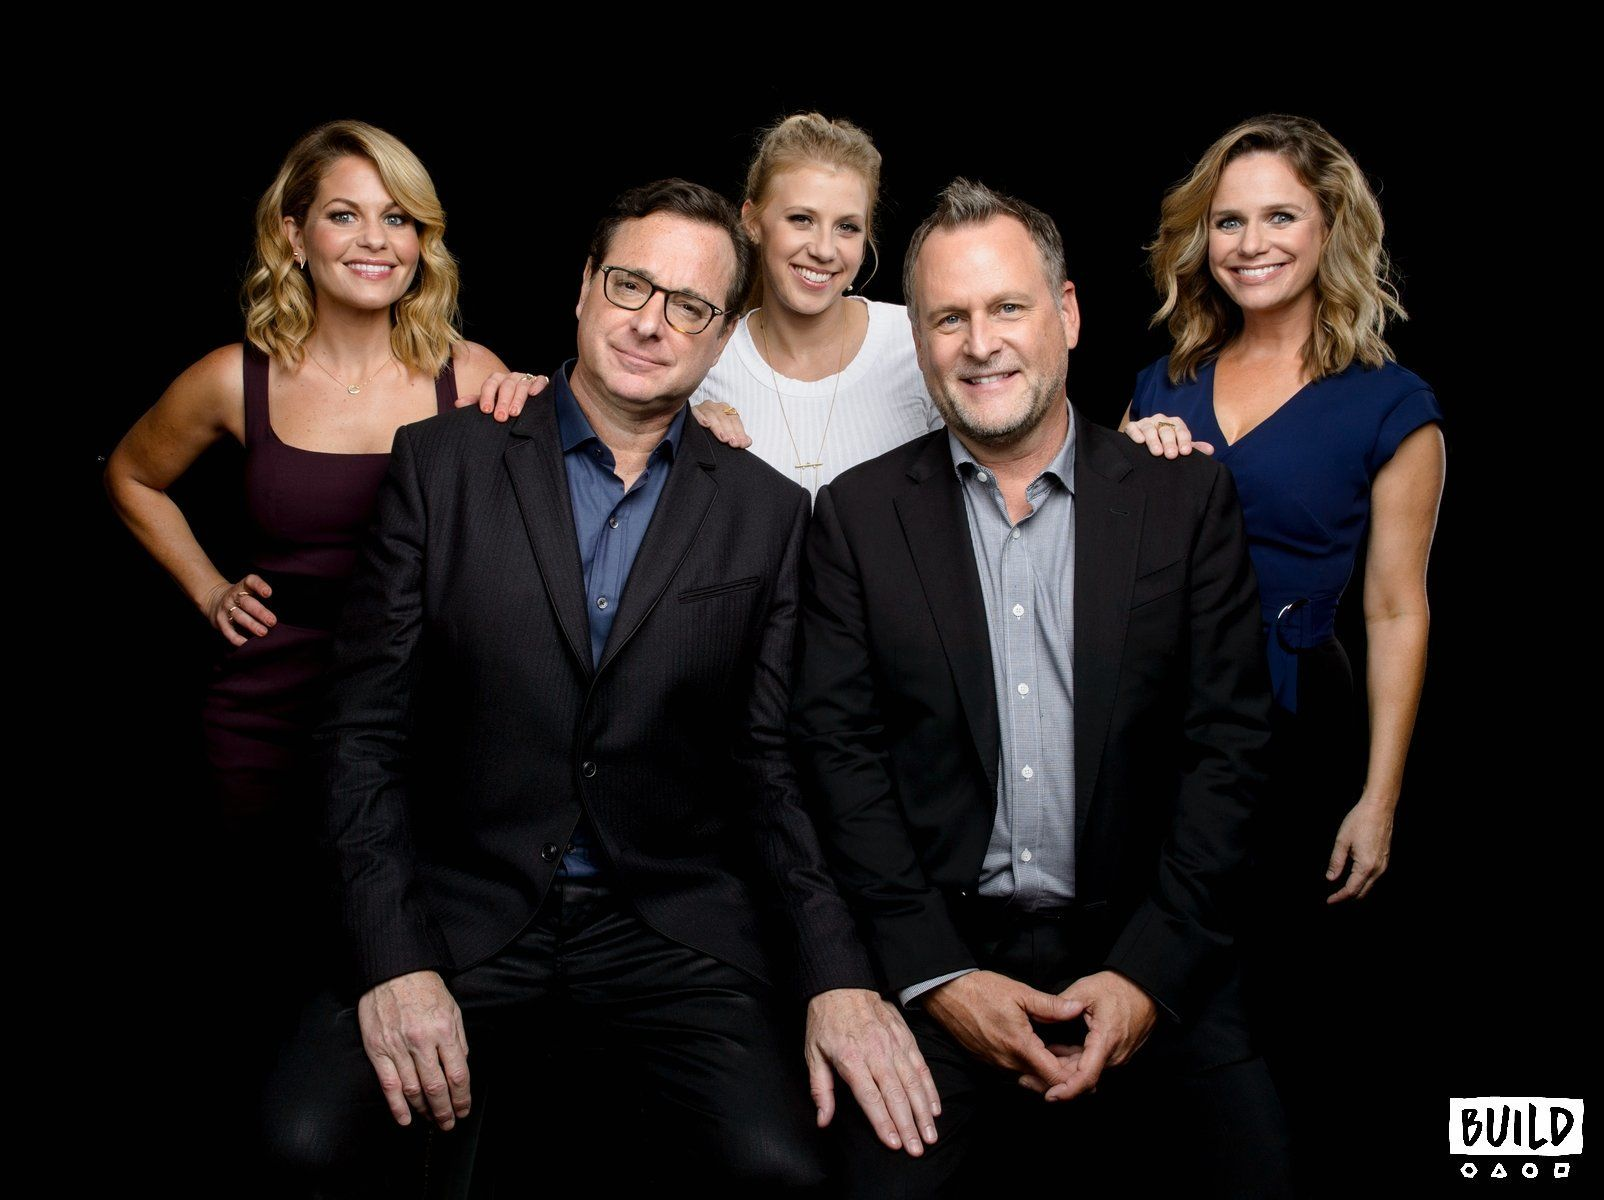 Bob Saget, Candace Cameron Bure, Jodie Sweetin, Andrea Barber & Dave Coulier (Fuller House) visit Build Series NYC on September 18, 2017 in New York. Photos by Noam Galai